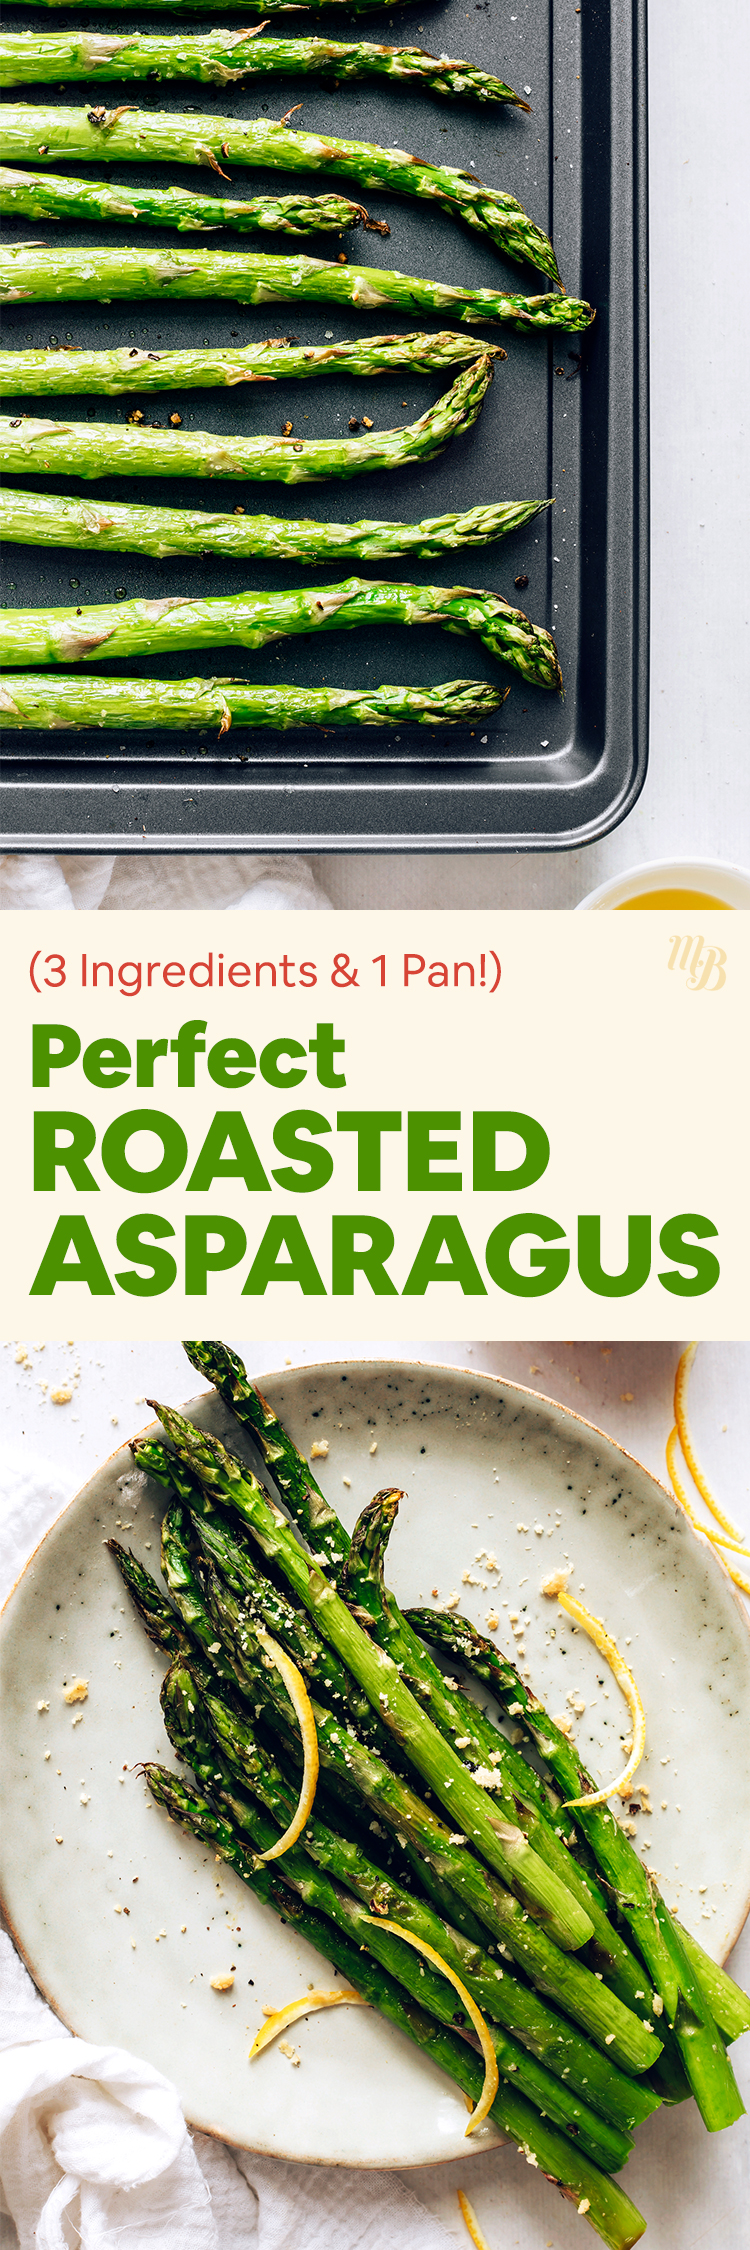 Baking sheet and plate with perfect roasted asparagus